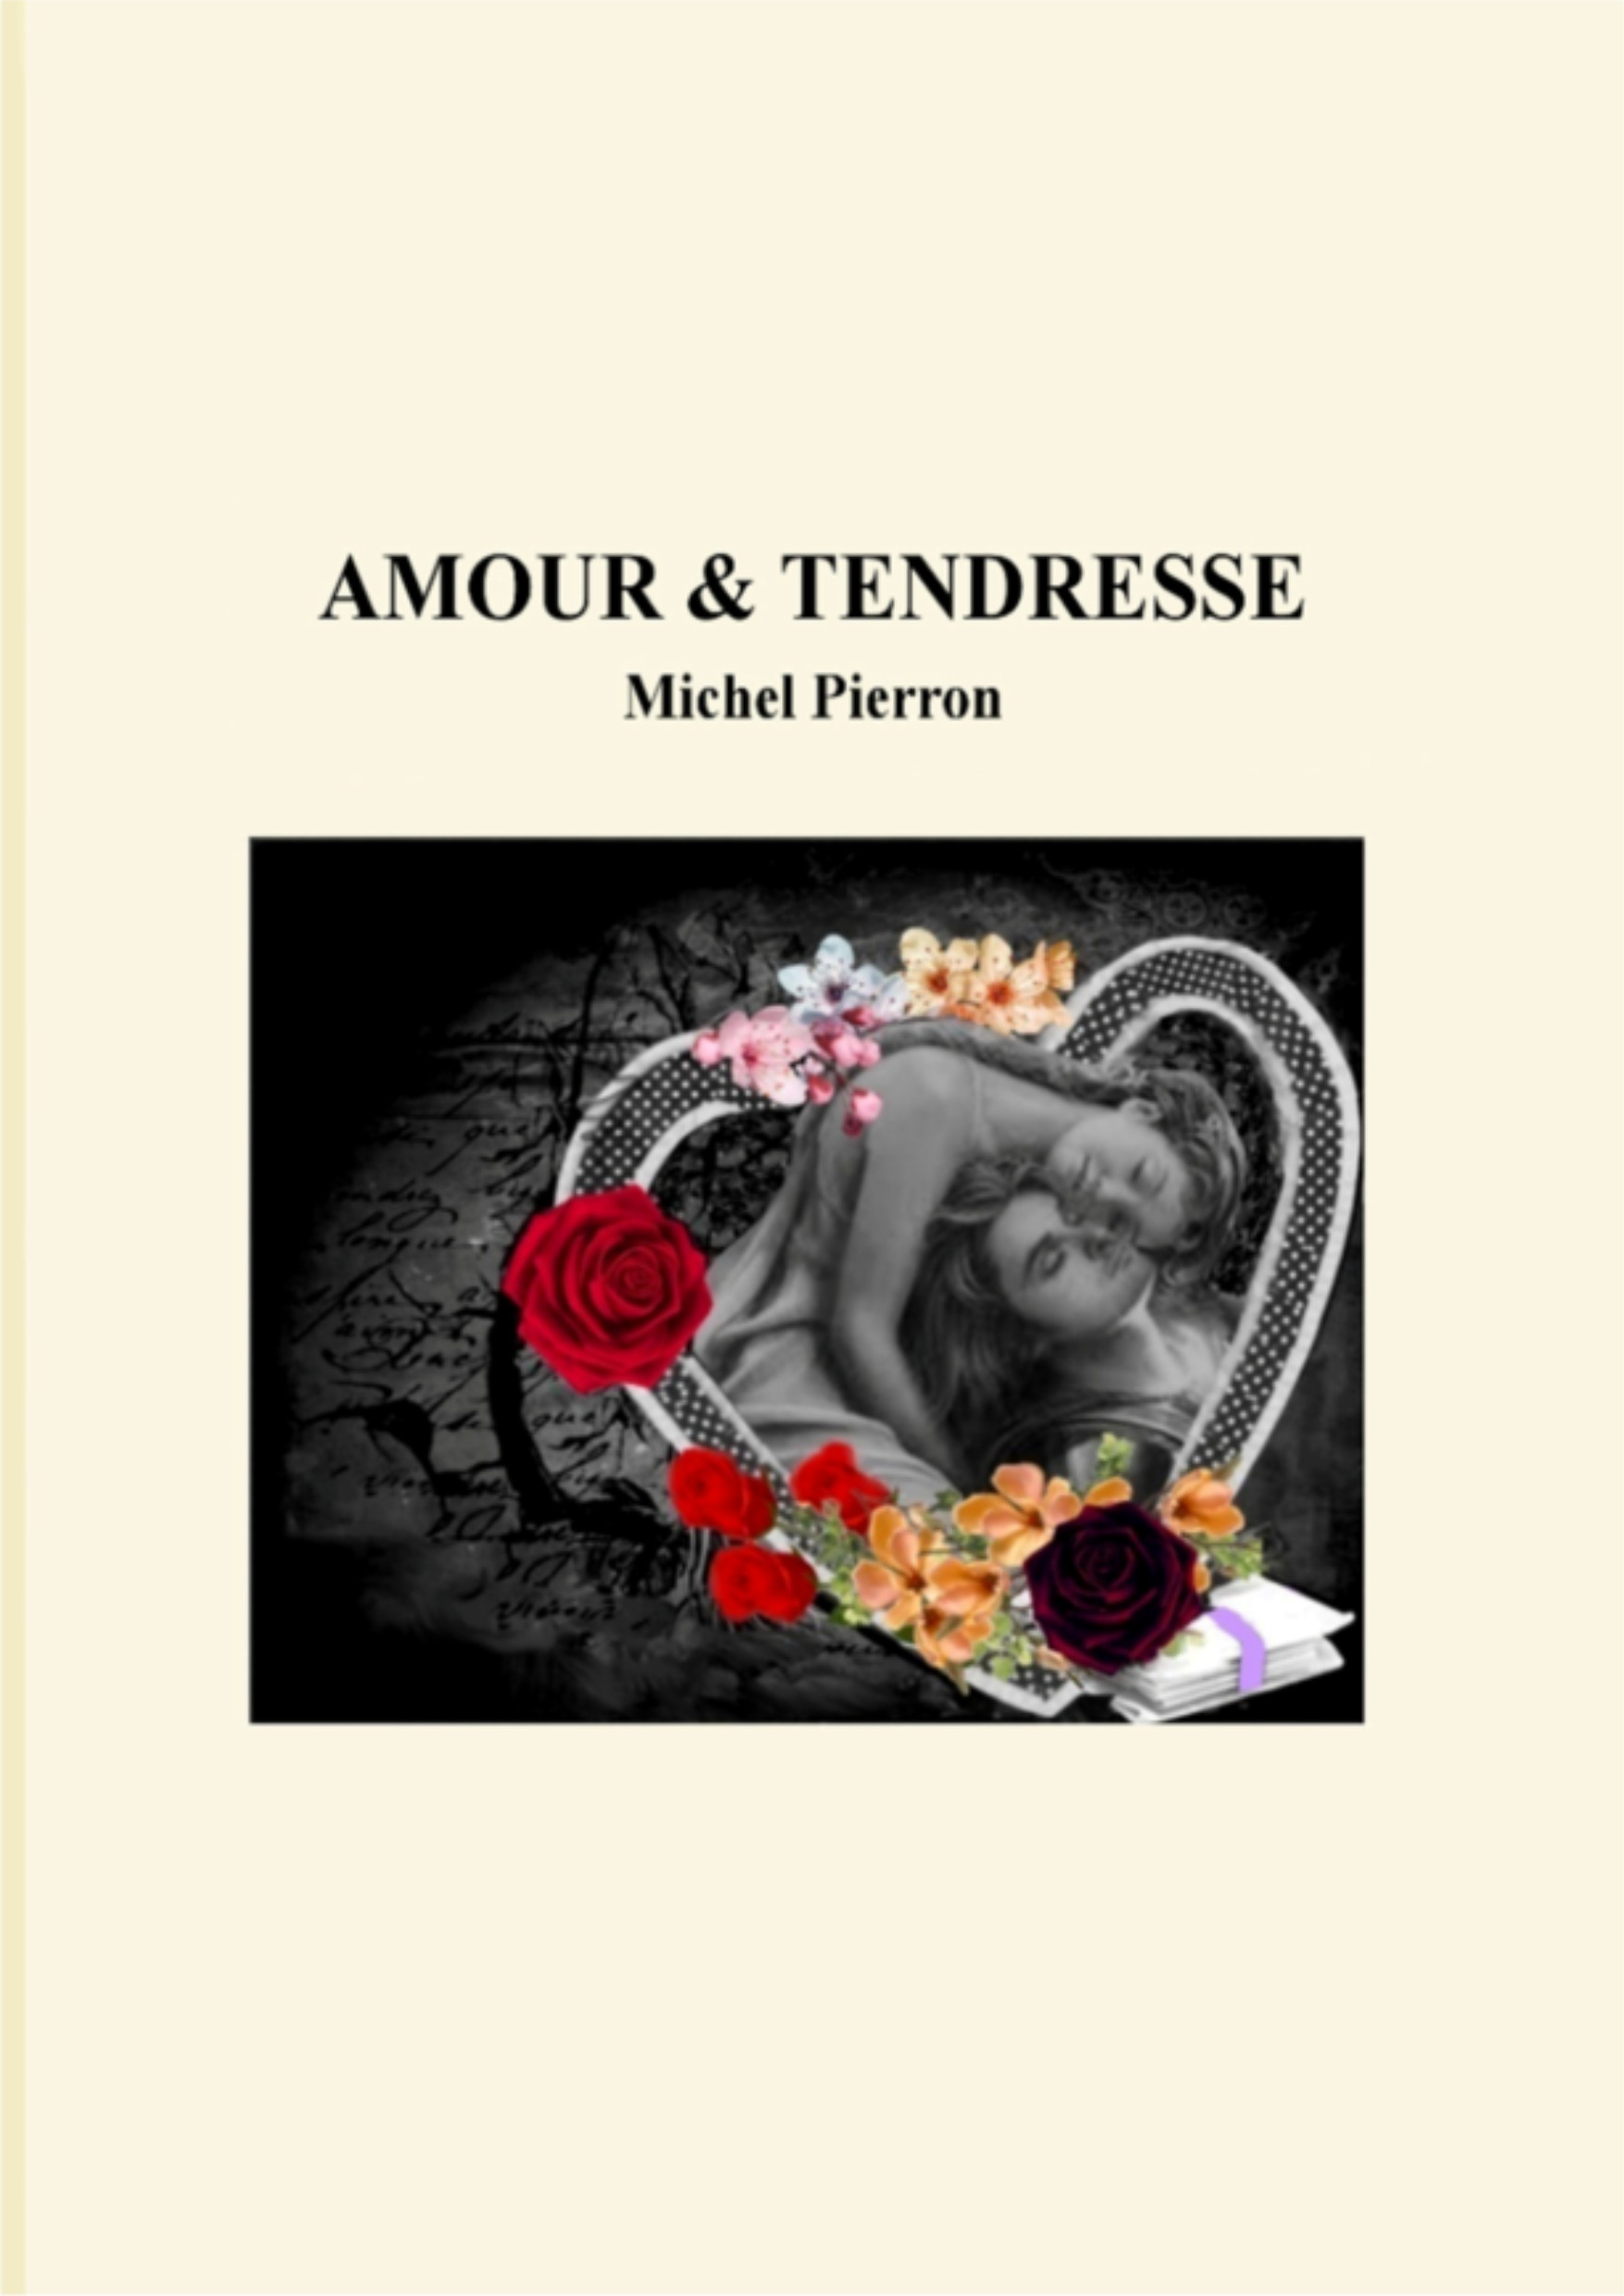 AMOUR & TENDRESSE